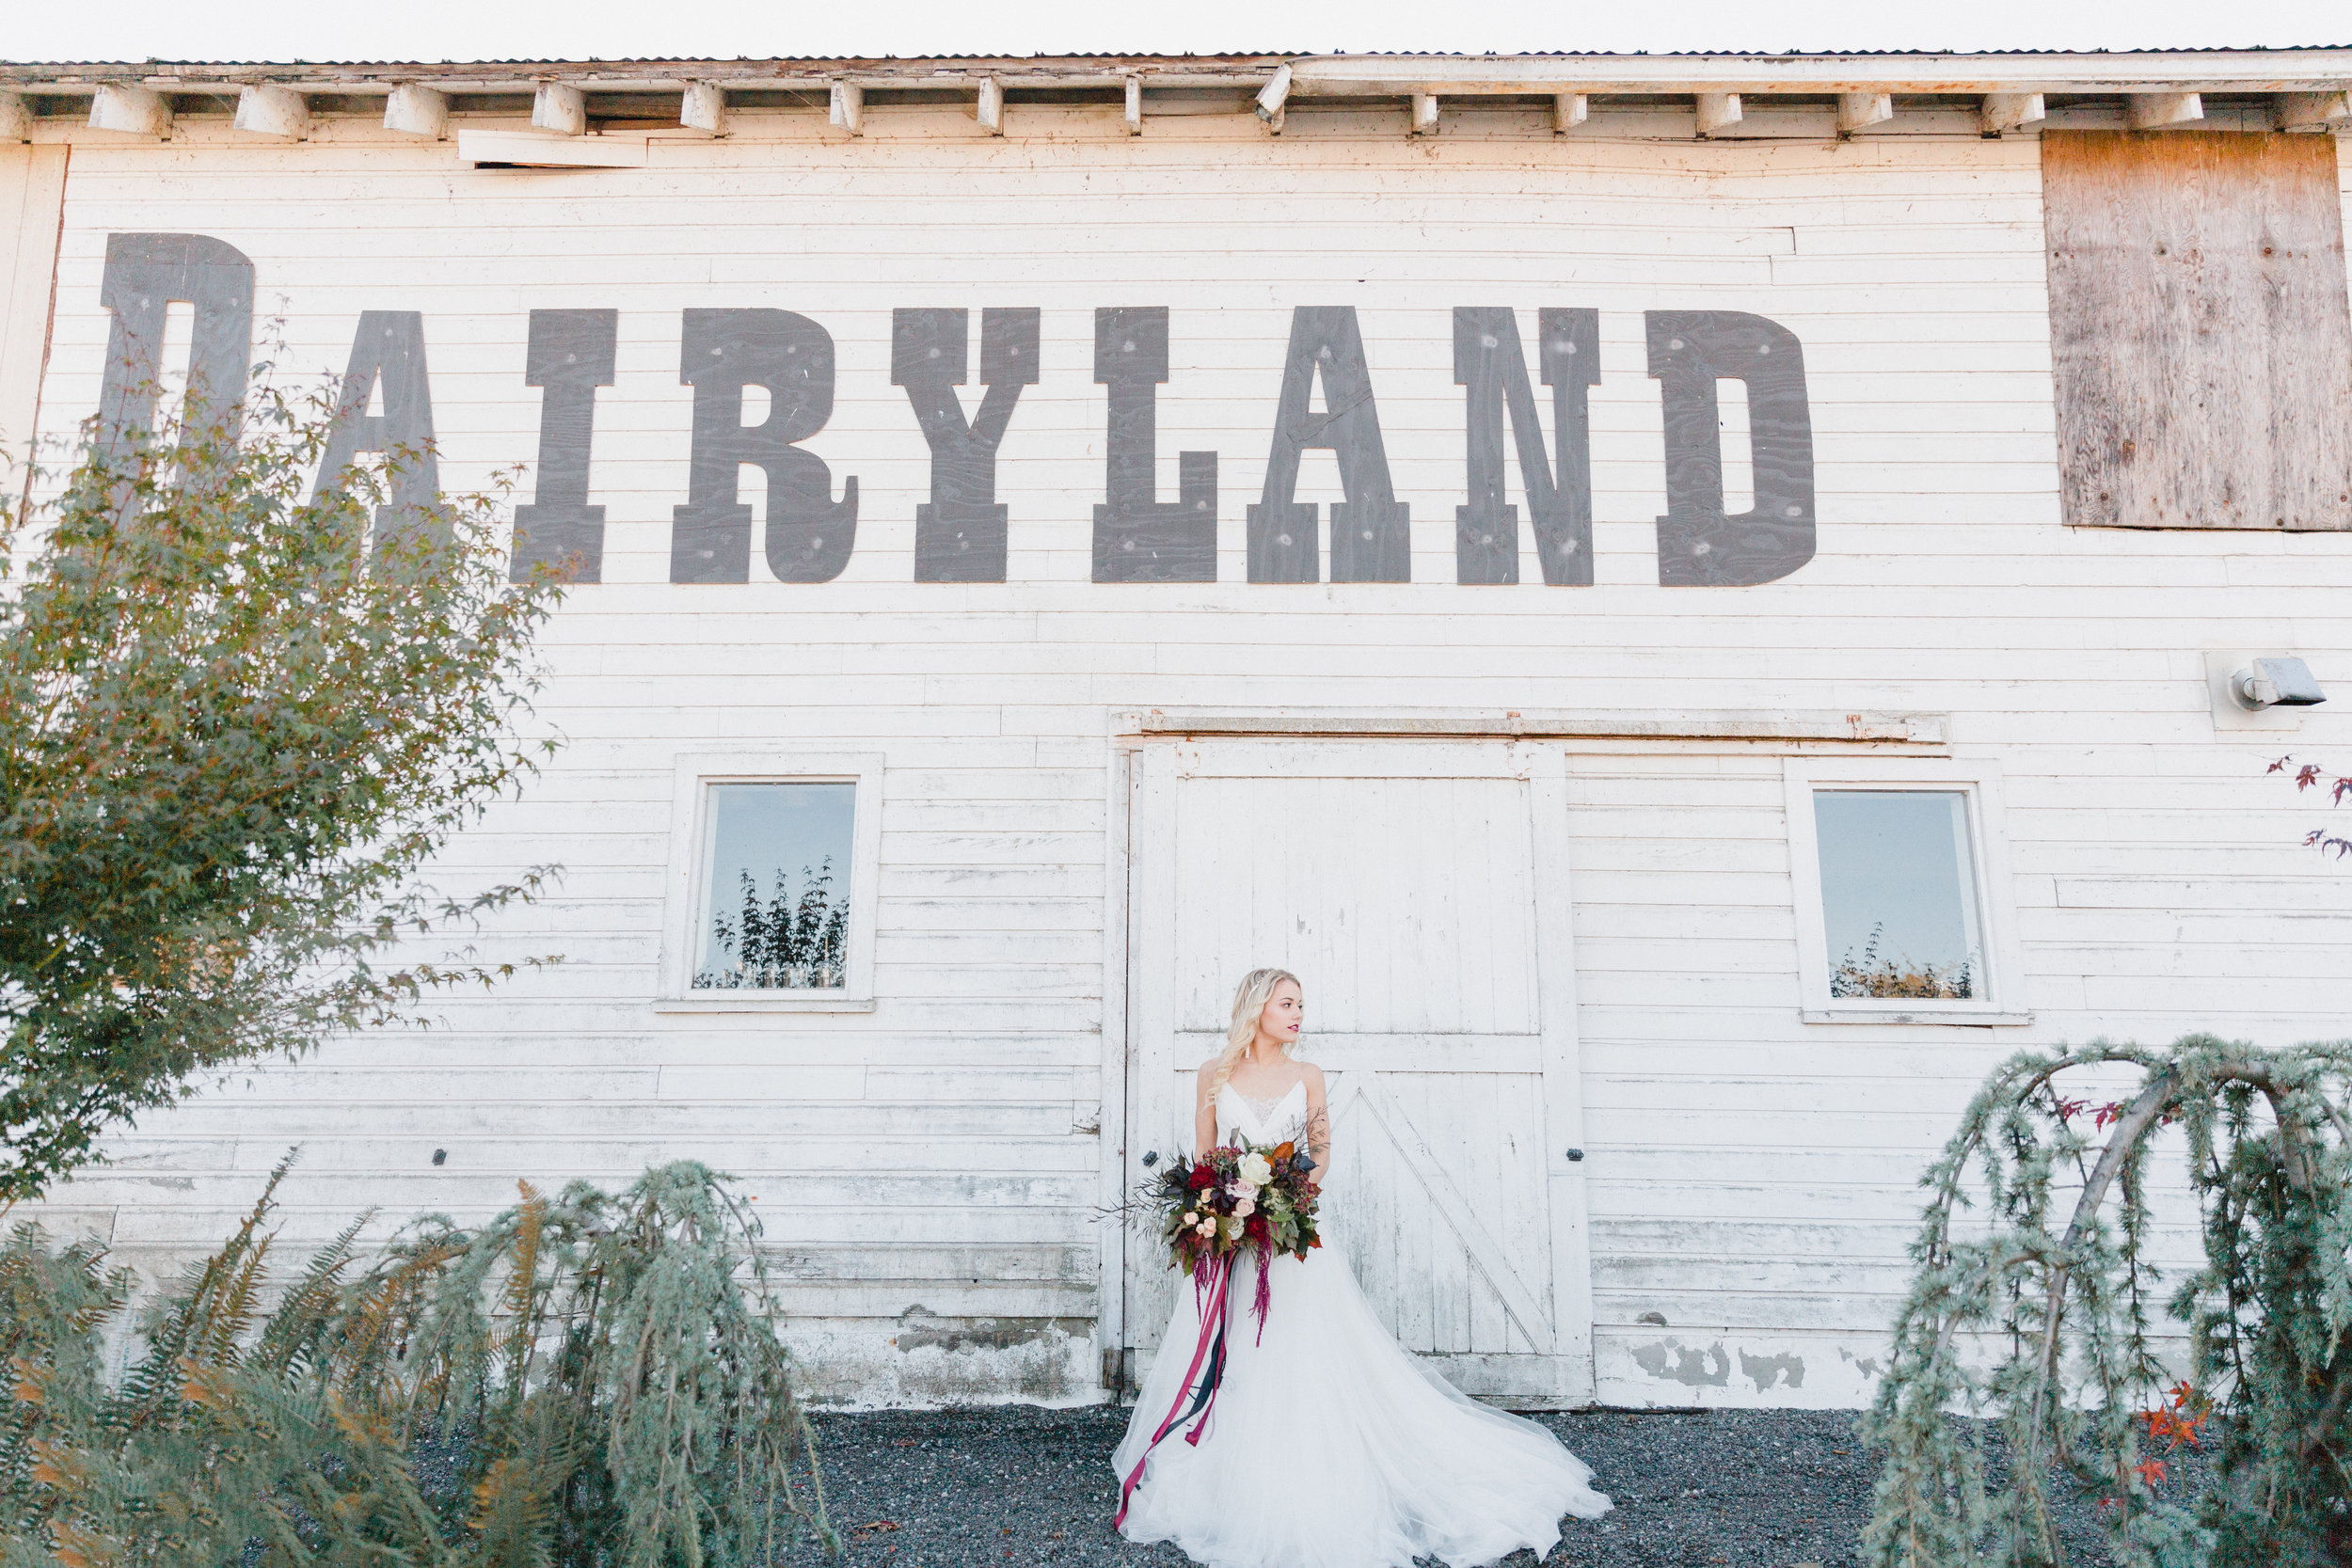 Dairyland Barn -A unique Snohomish wedding venue. Floral by From the Ground Up Floral